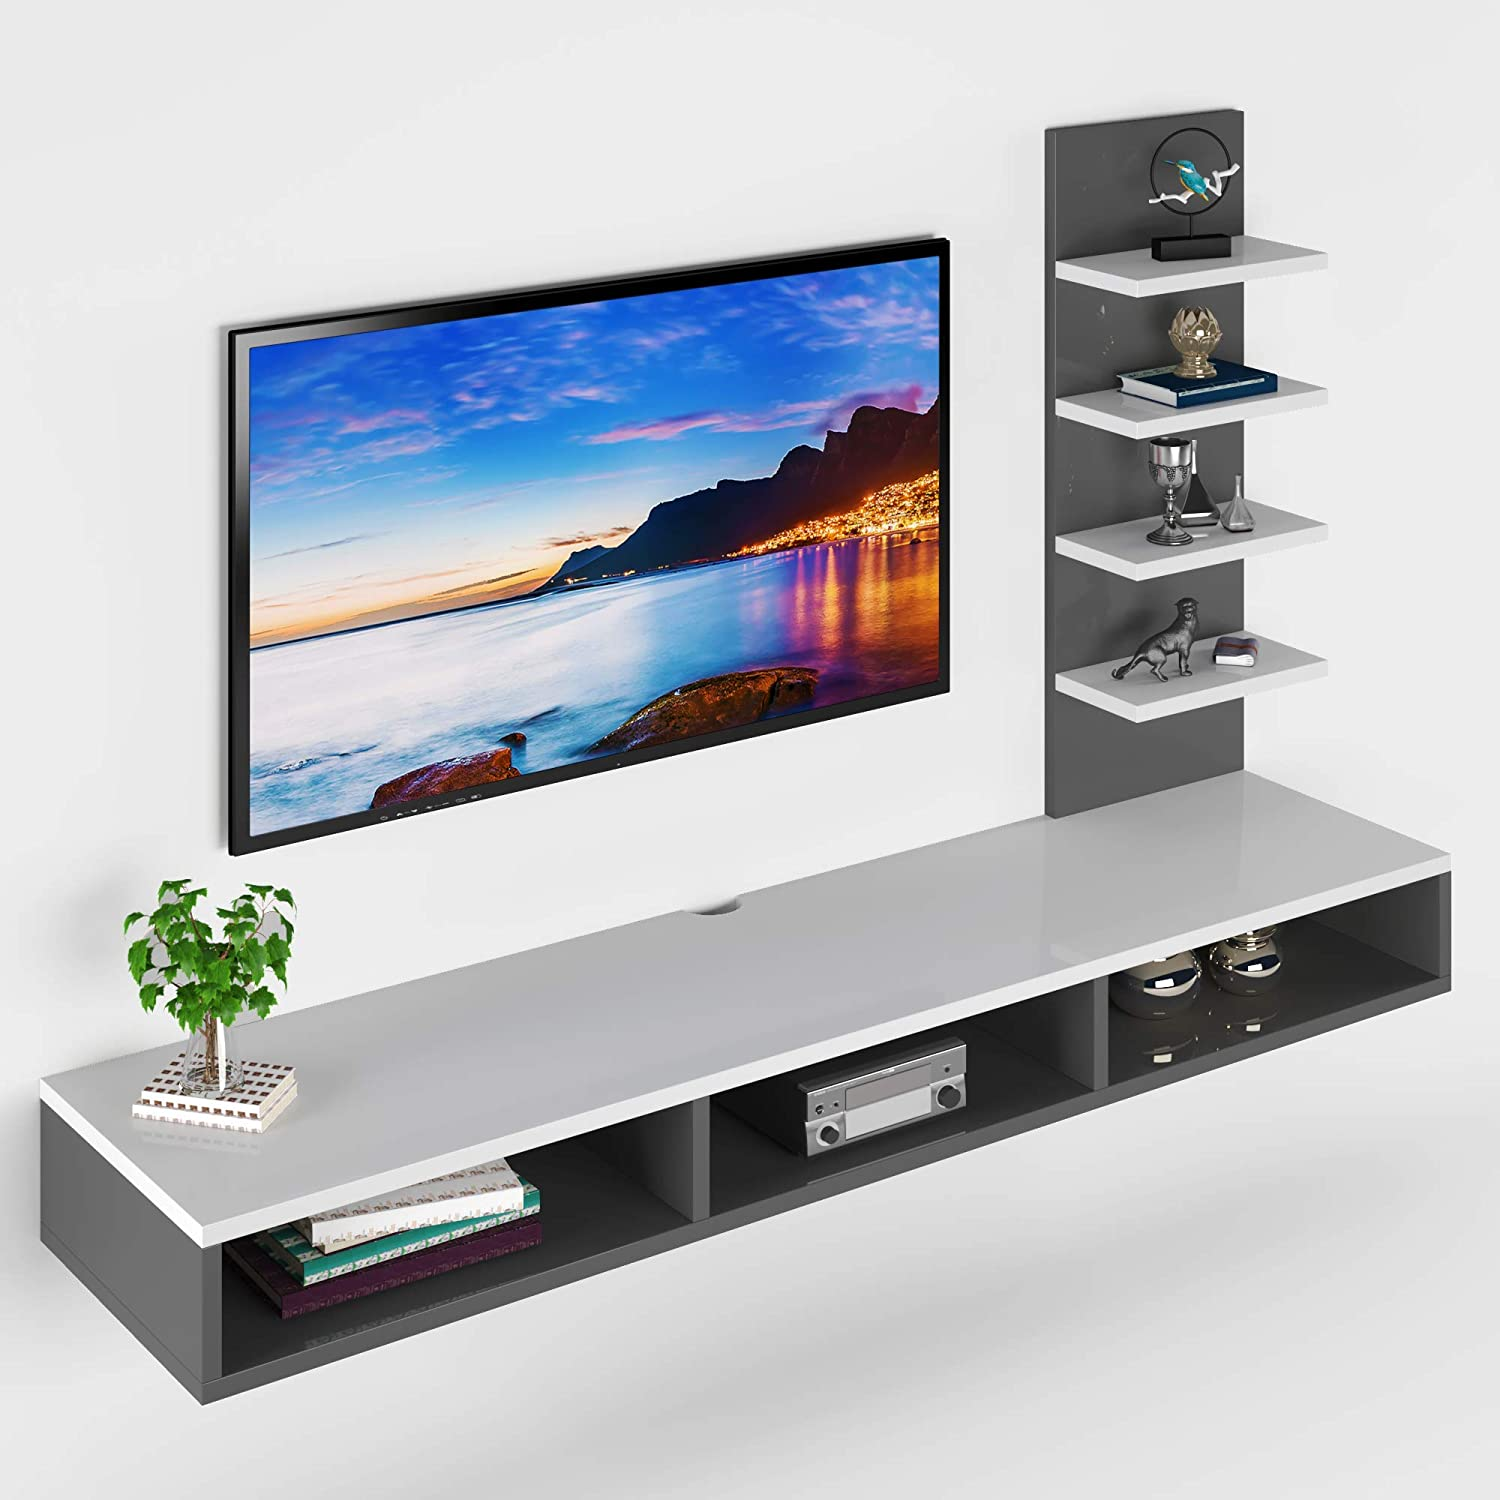 Decorvaiz Wooden Wall Mounted Tv Unit For Living Room Tv Cabinet For Living Room Tv Stand For Living Room Ideal For Tv Upto 42 White Grey Accessories Included Amazon In Home